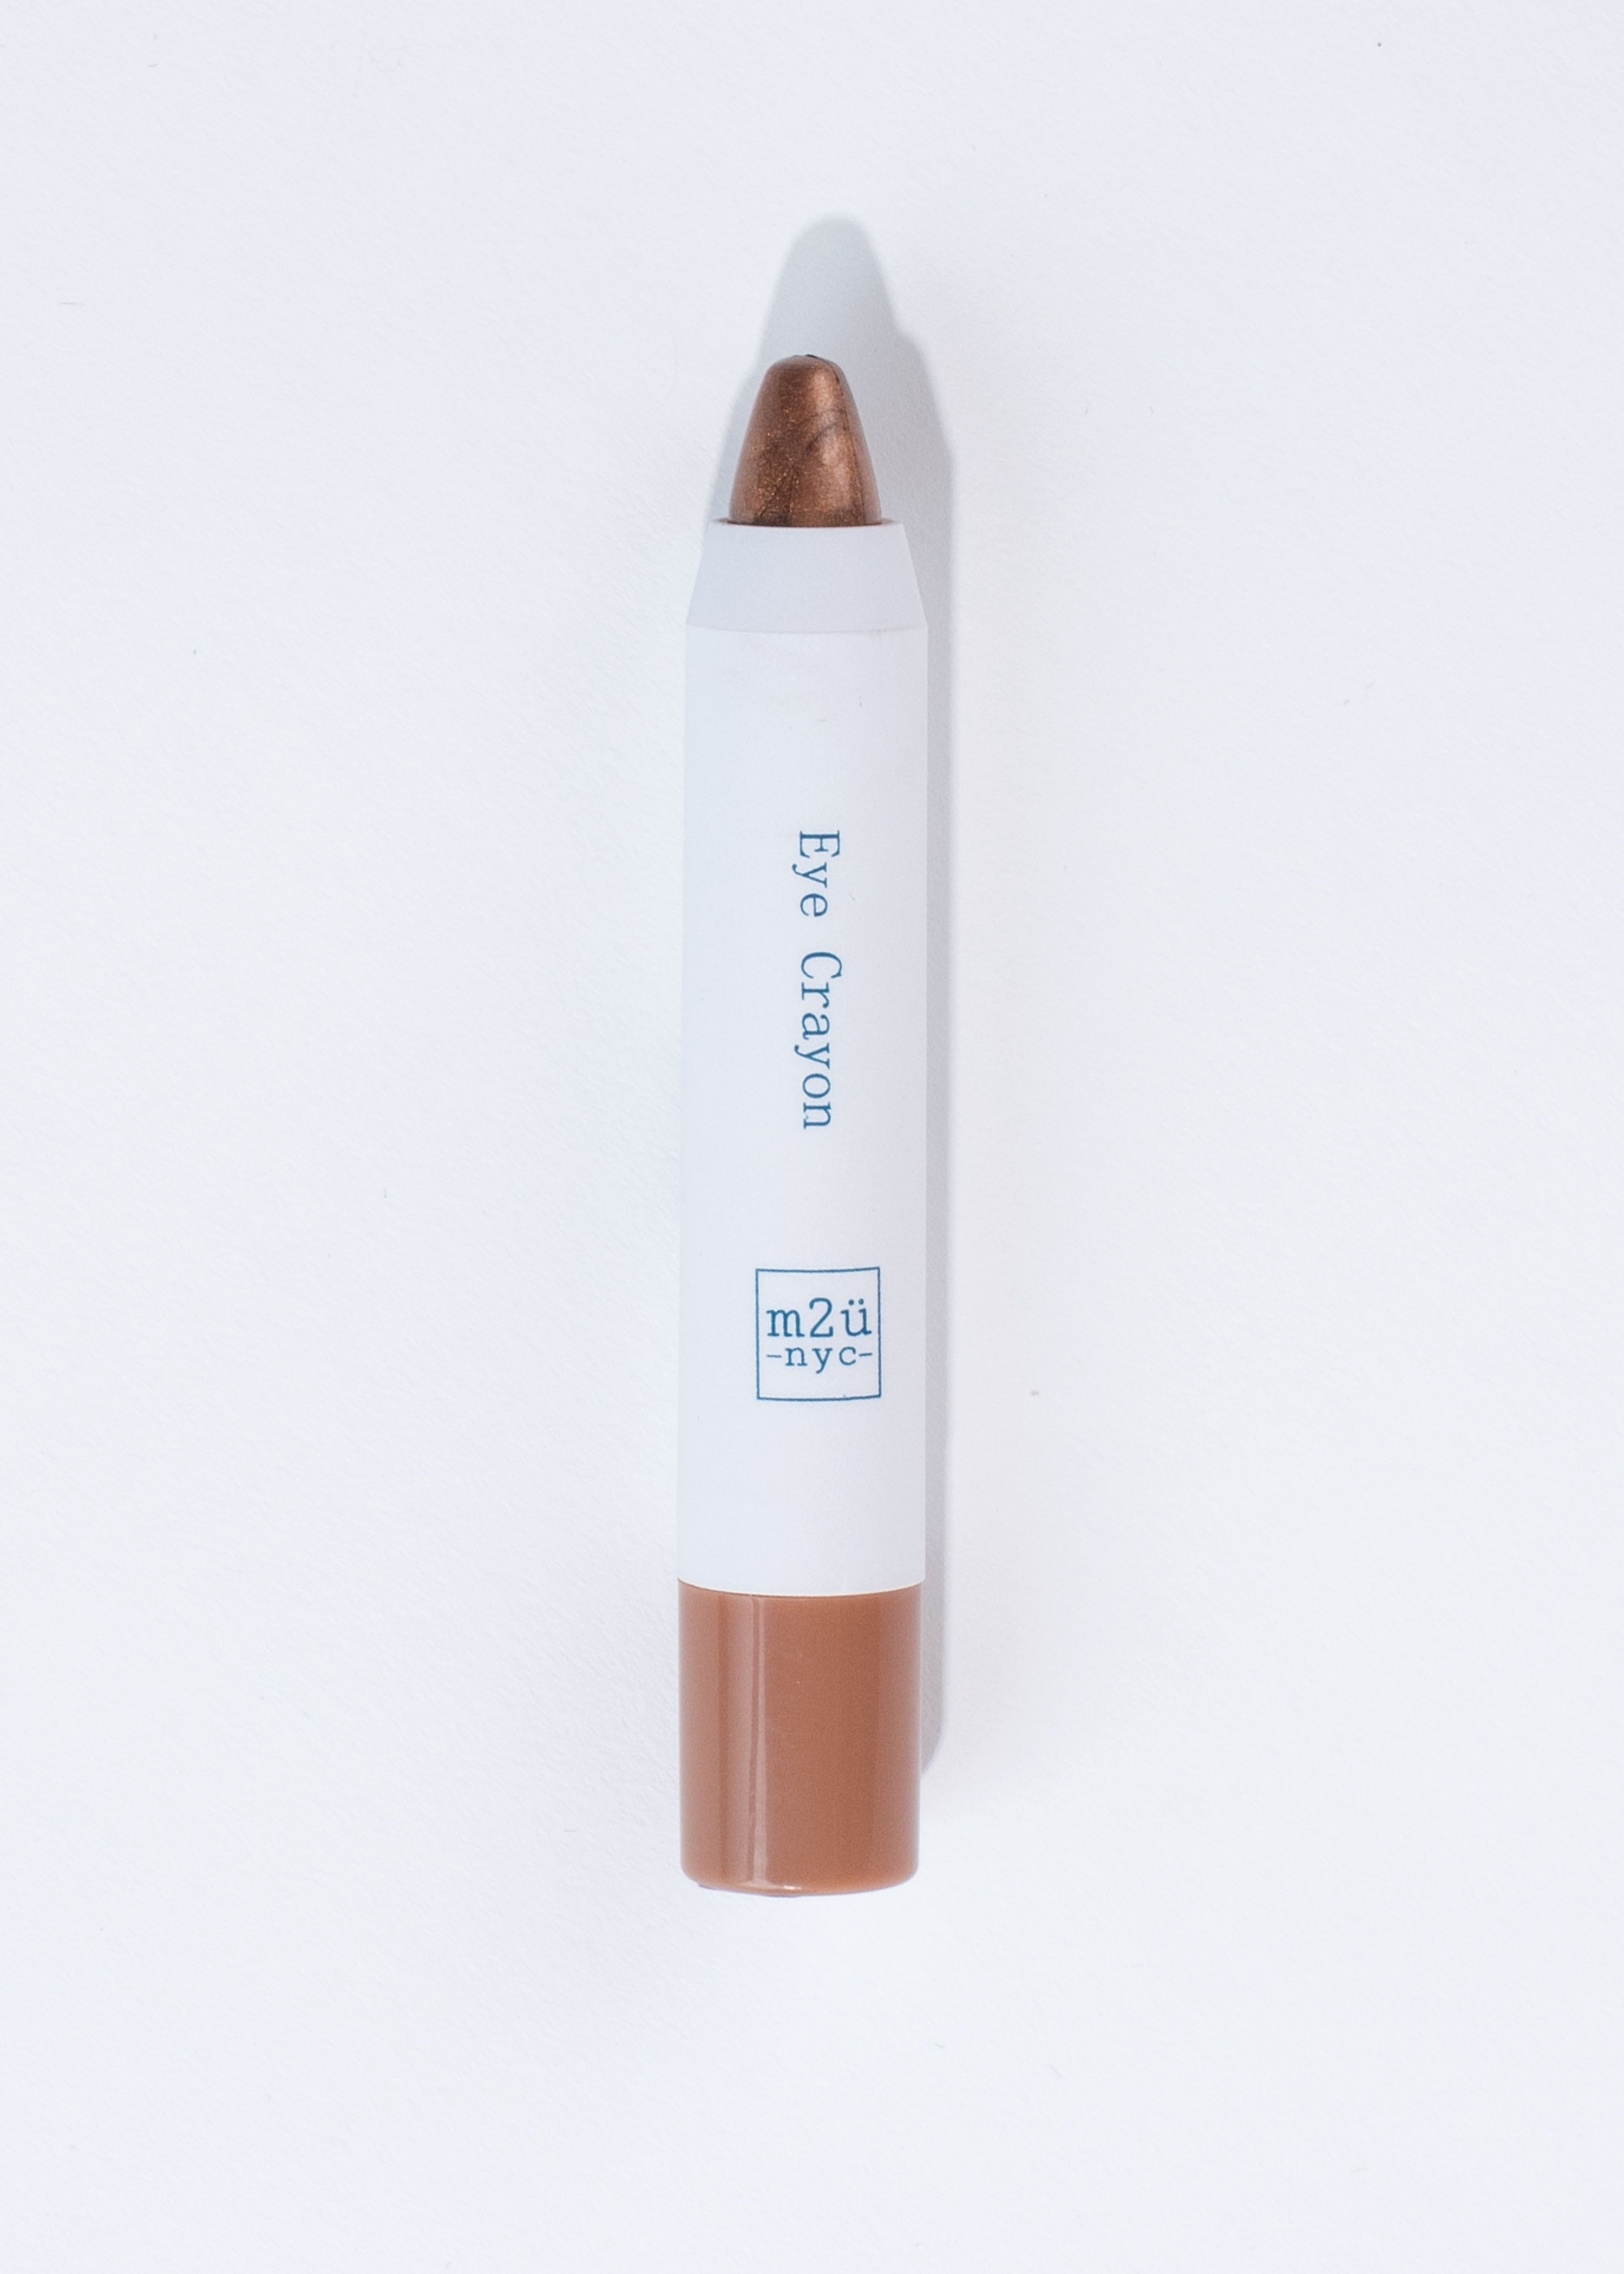 pencil-like eyeshadow crayon in shade copper storm